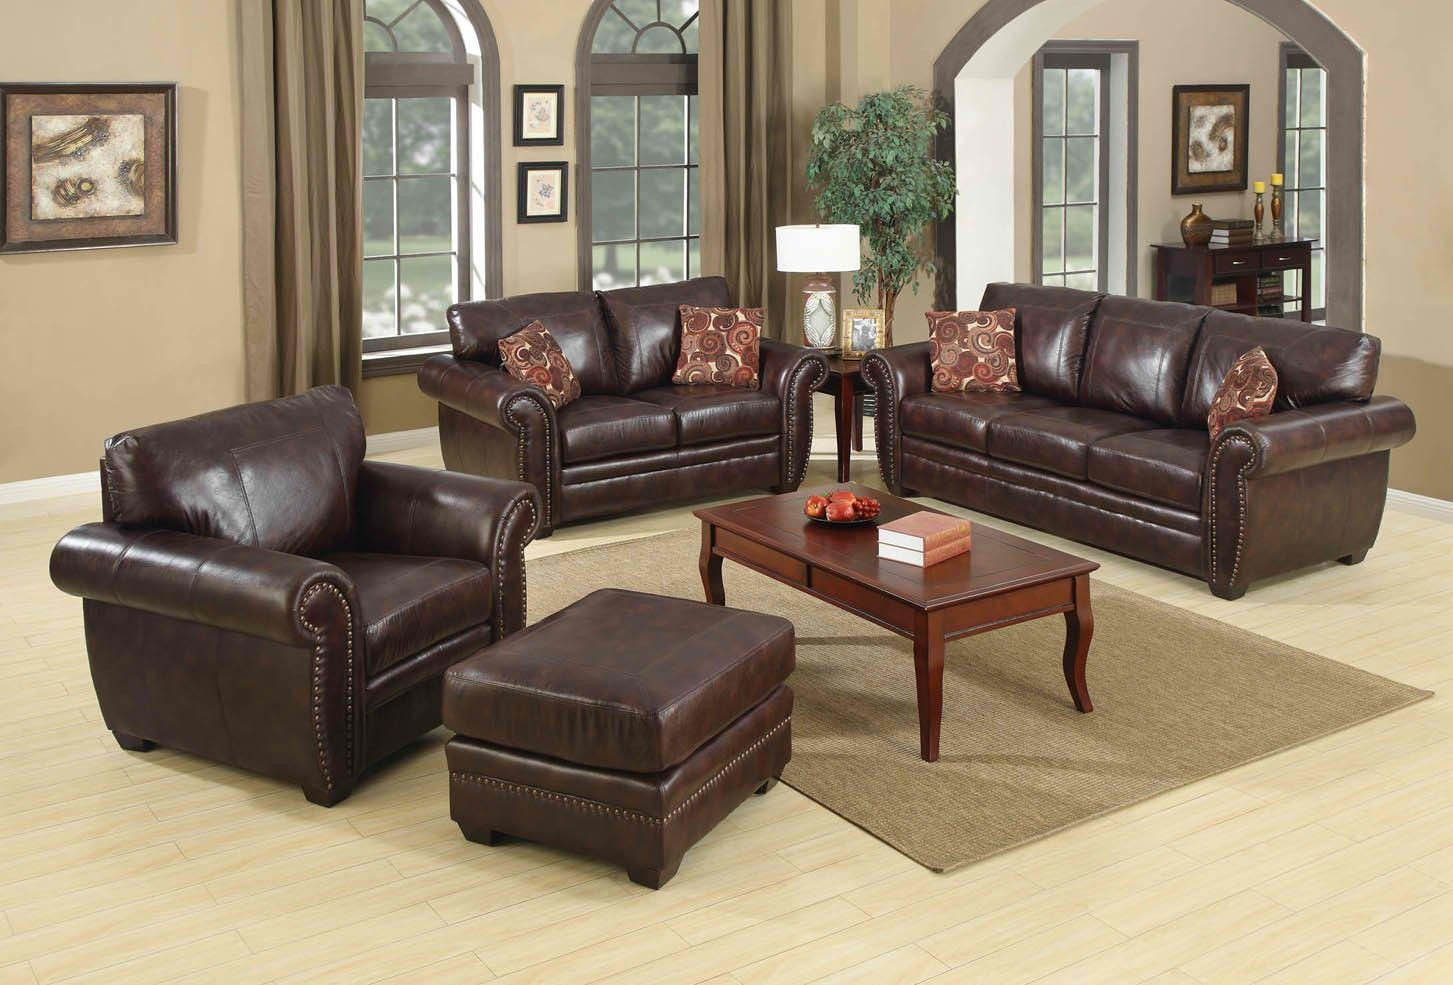 best leather furniture decorating ideas images - design and